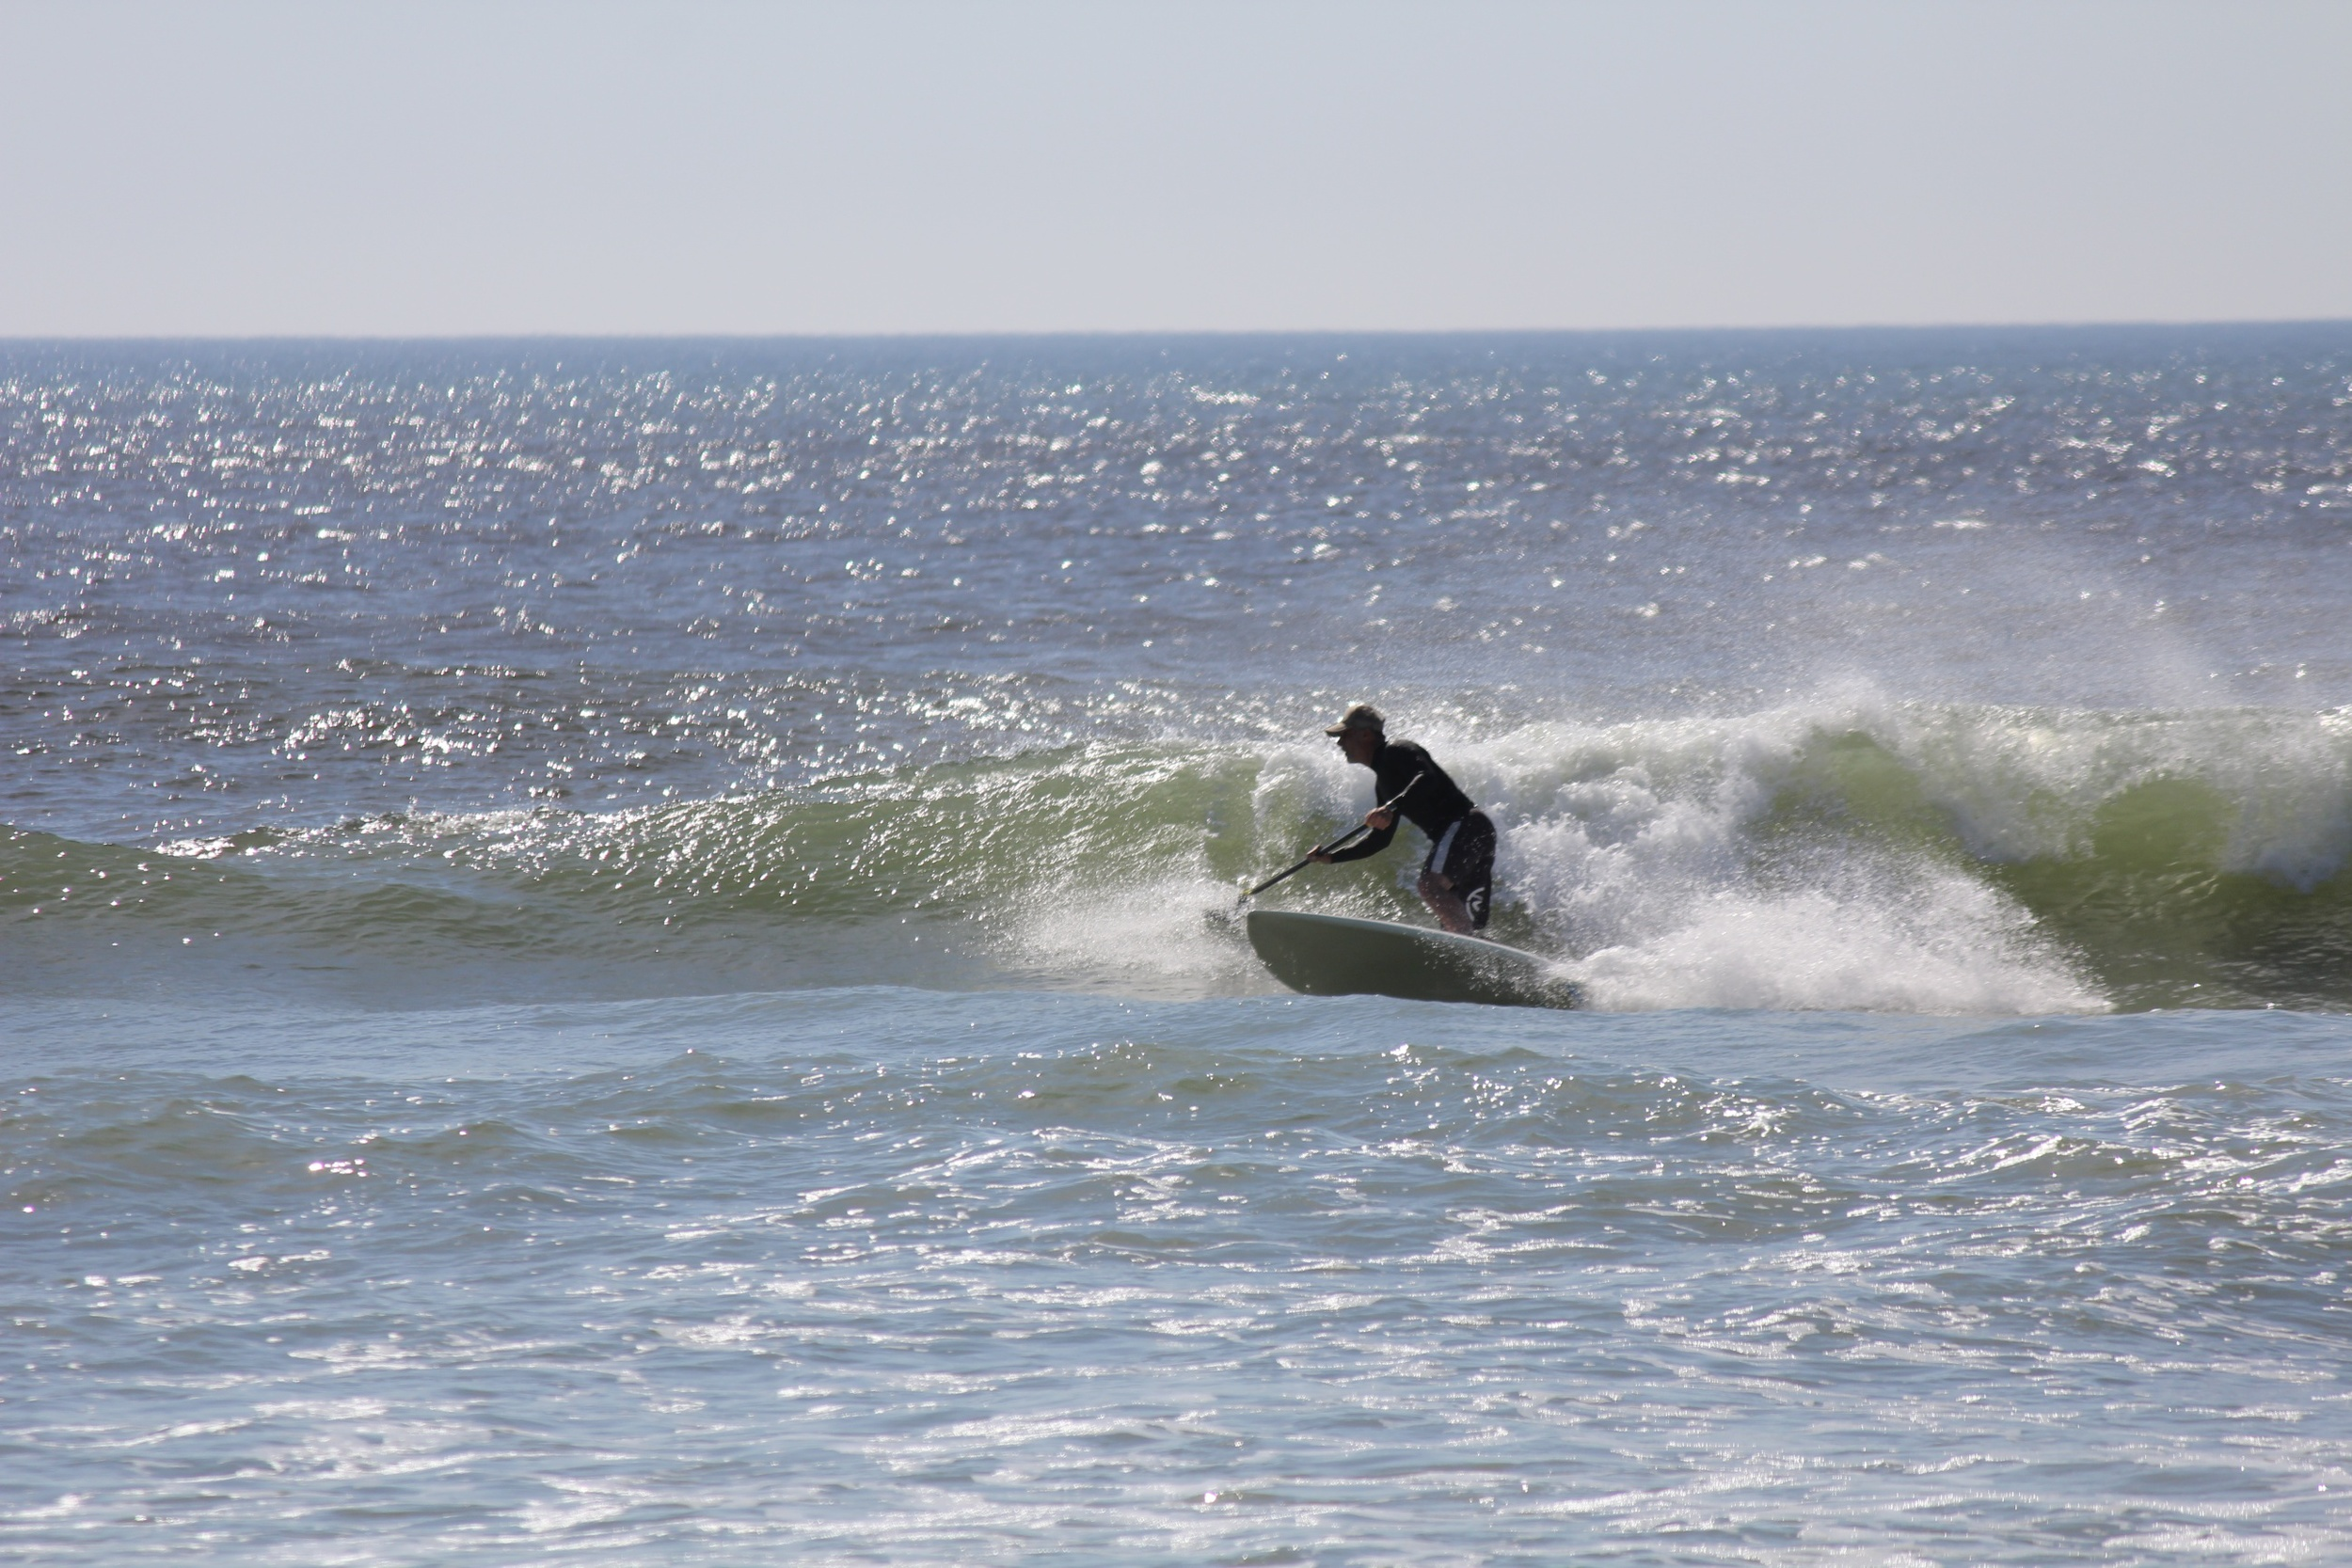 Bonus photo found in the camera from last weekend. Brian McKenzie on his 8'5 Inlet Runner